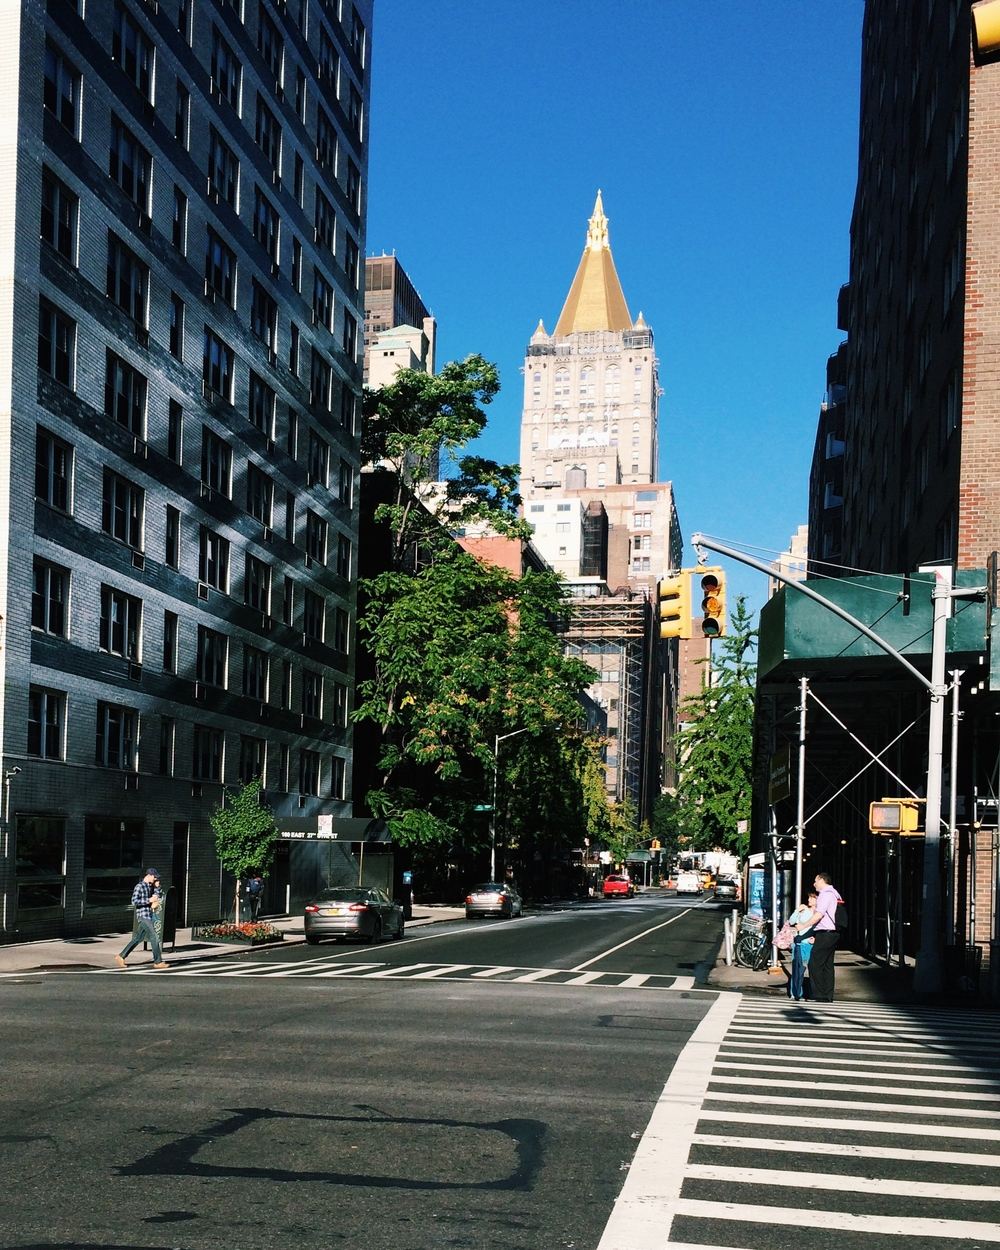 Lauren-Schwaiger-Blog-NYC-Gold-Roof-Building.jpg